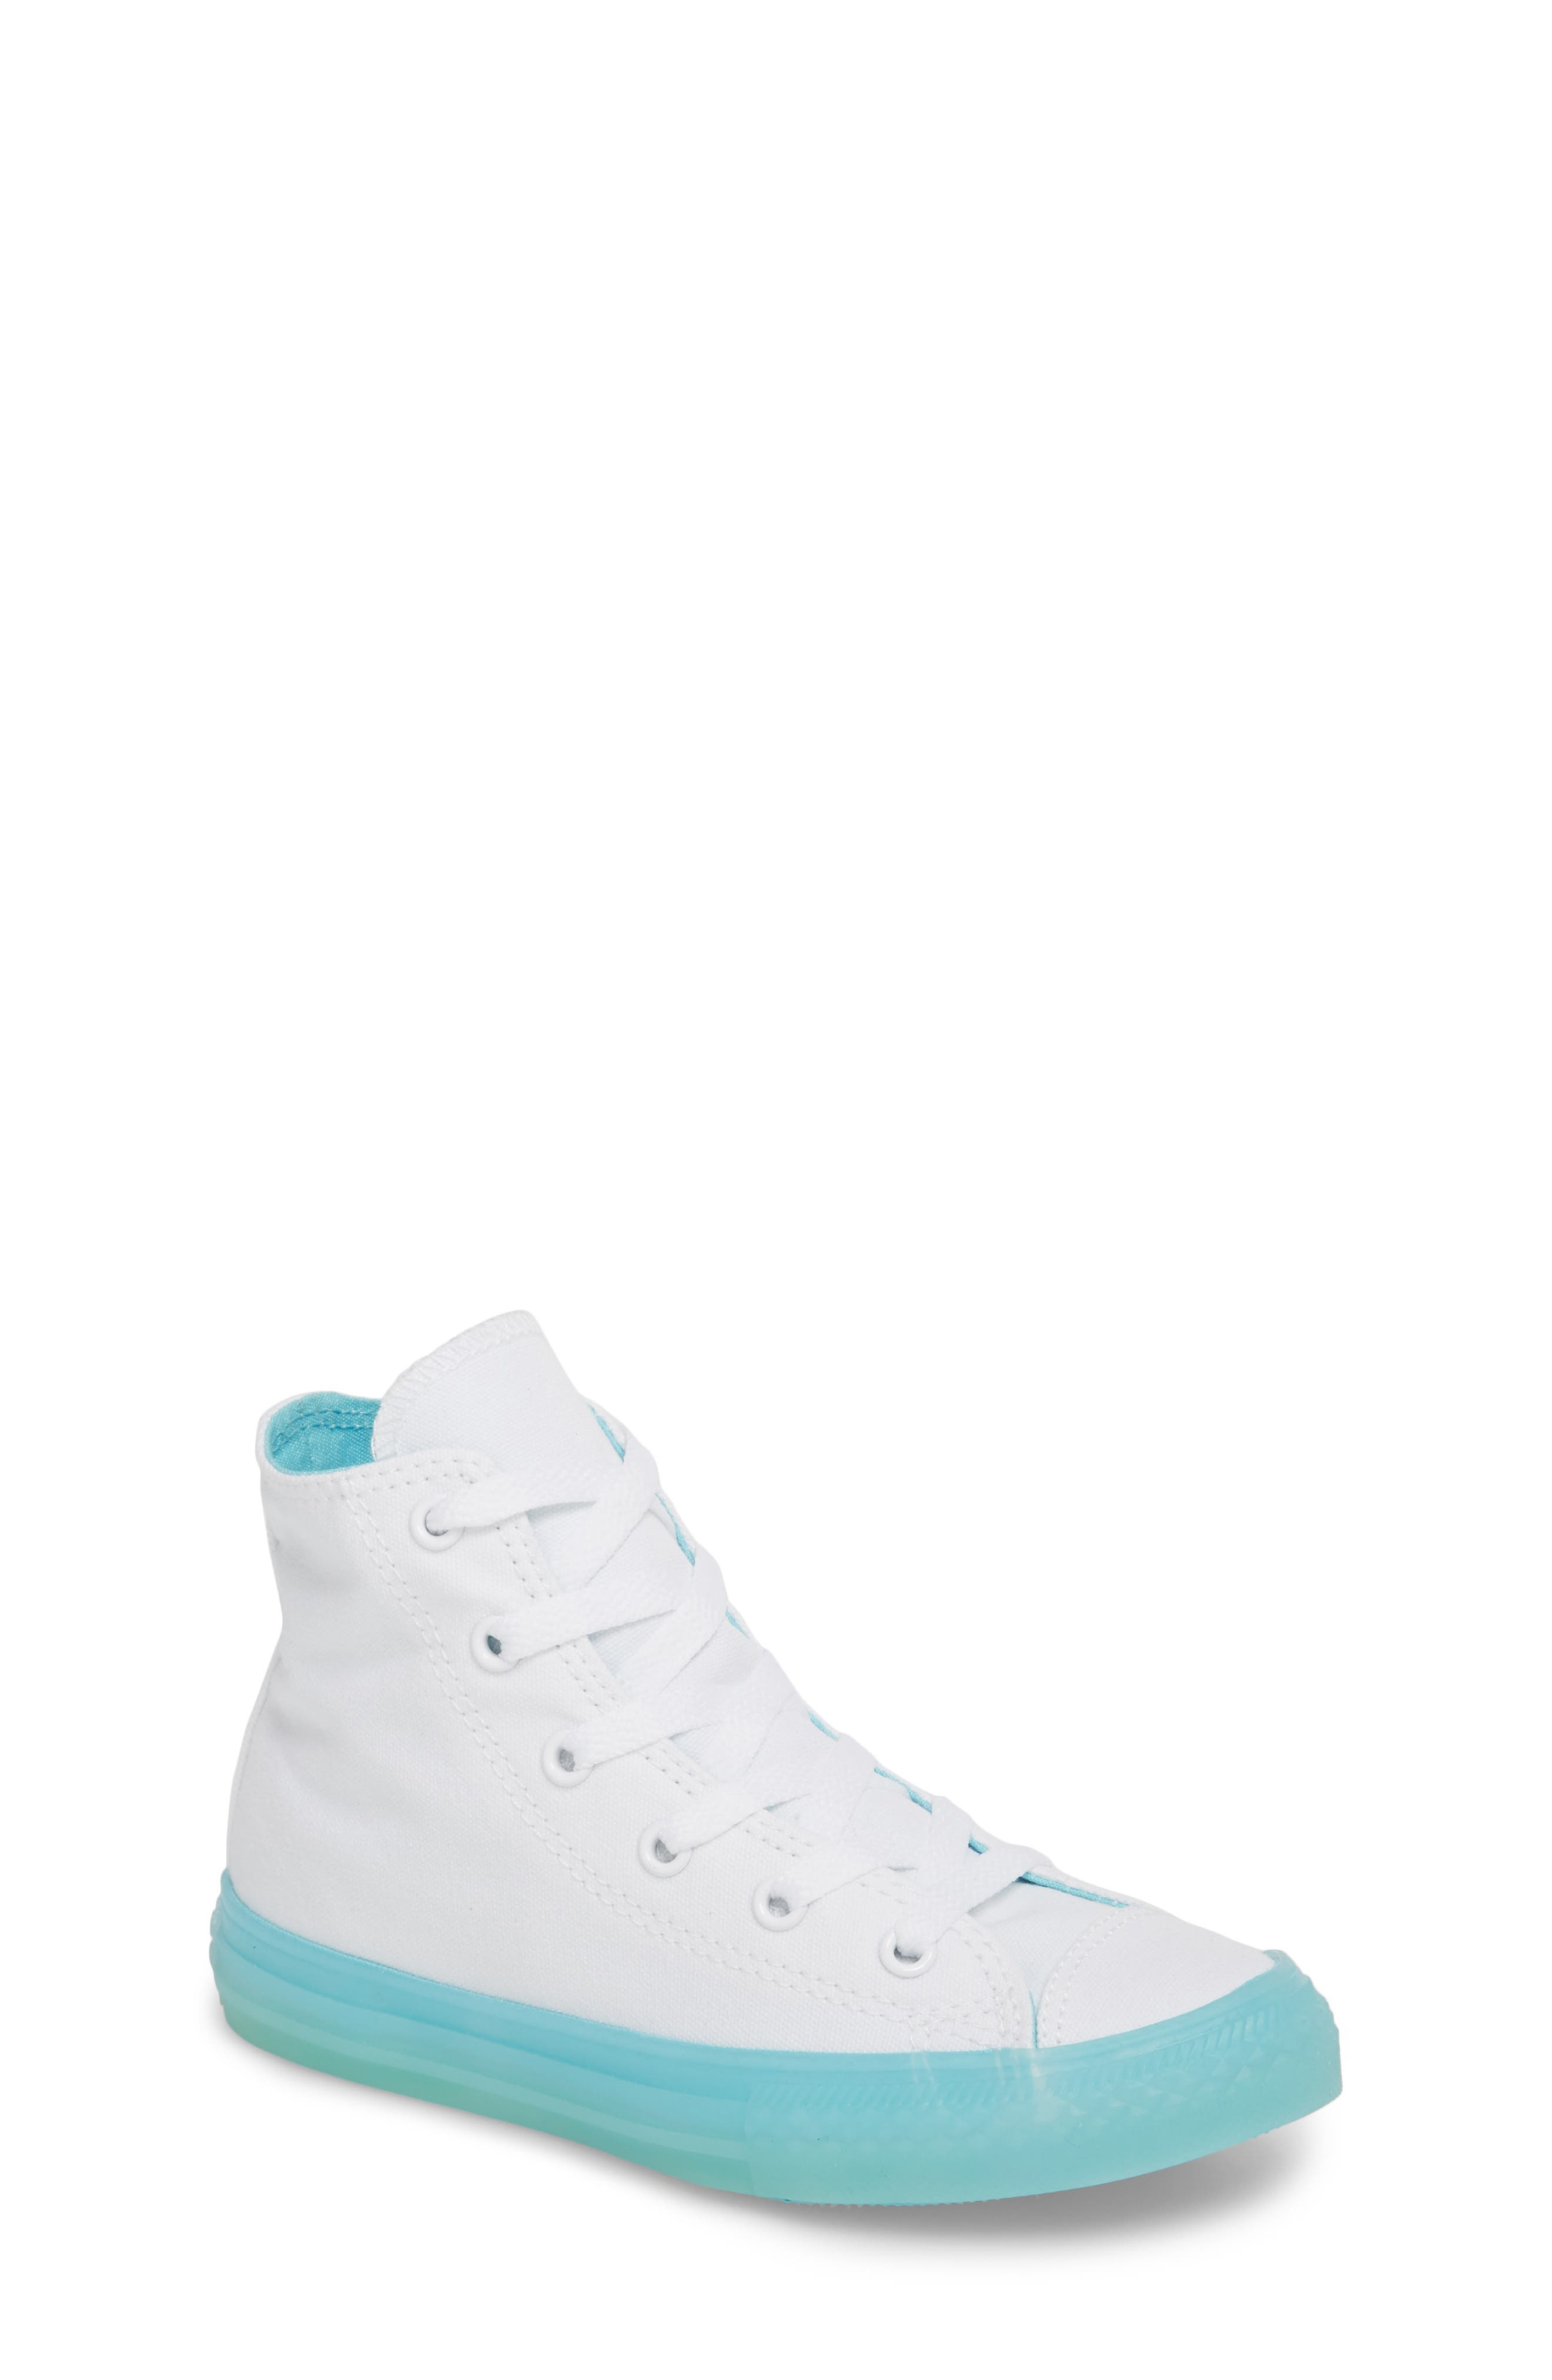 Chuck Taylor<sup>®</sup> All Star<sup>®</sup> Jelly High Top Sneaker,                         Main,                         color, 405